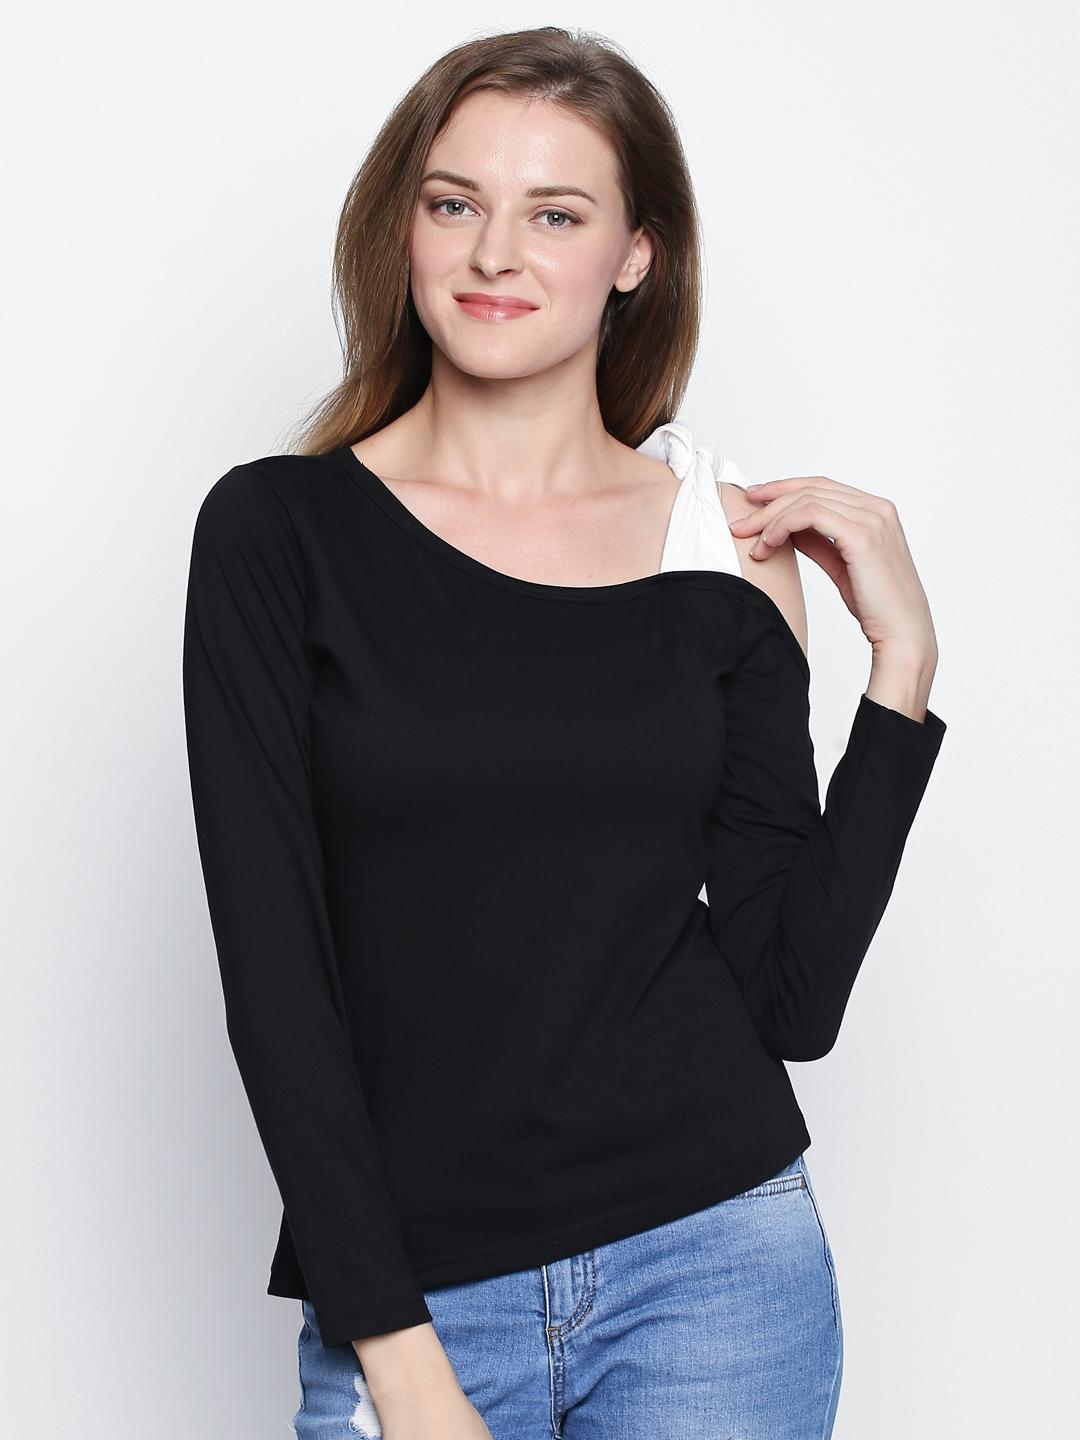 Black Solid Tie One Shoulder Long Sleeve T-shirt For Women. Rid-132